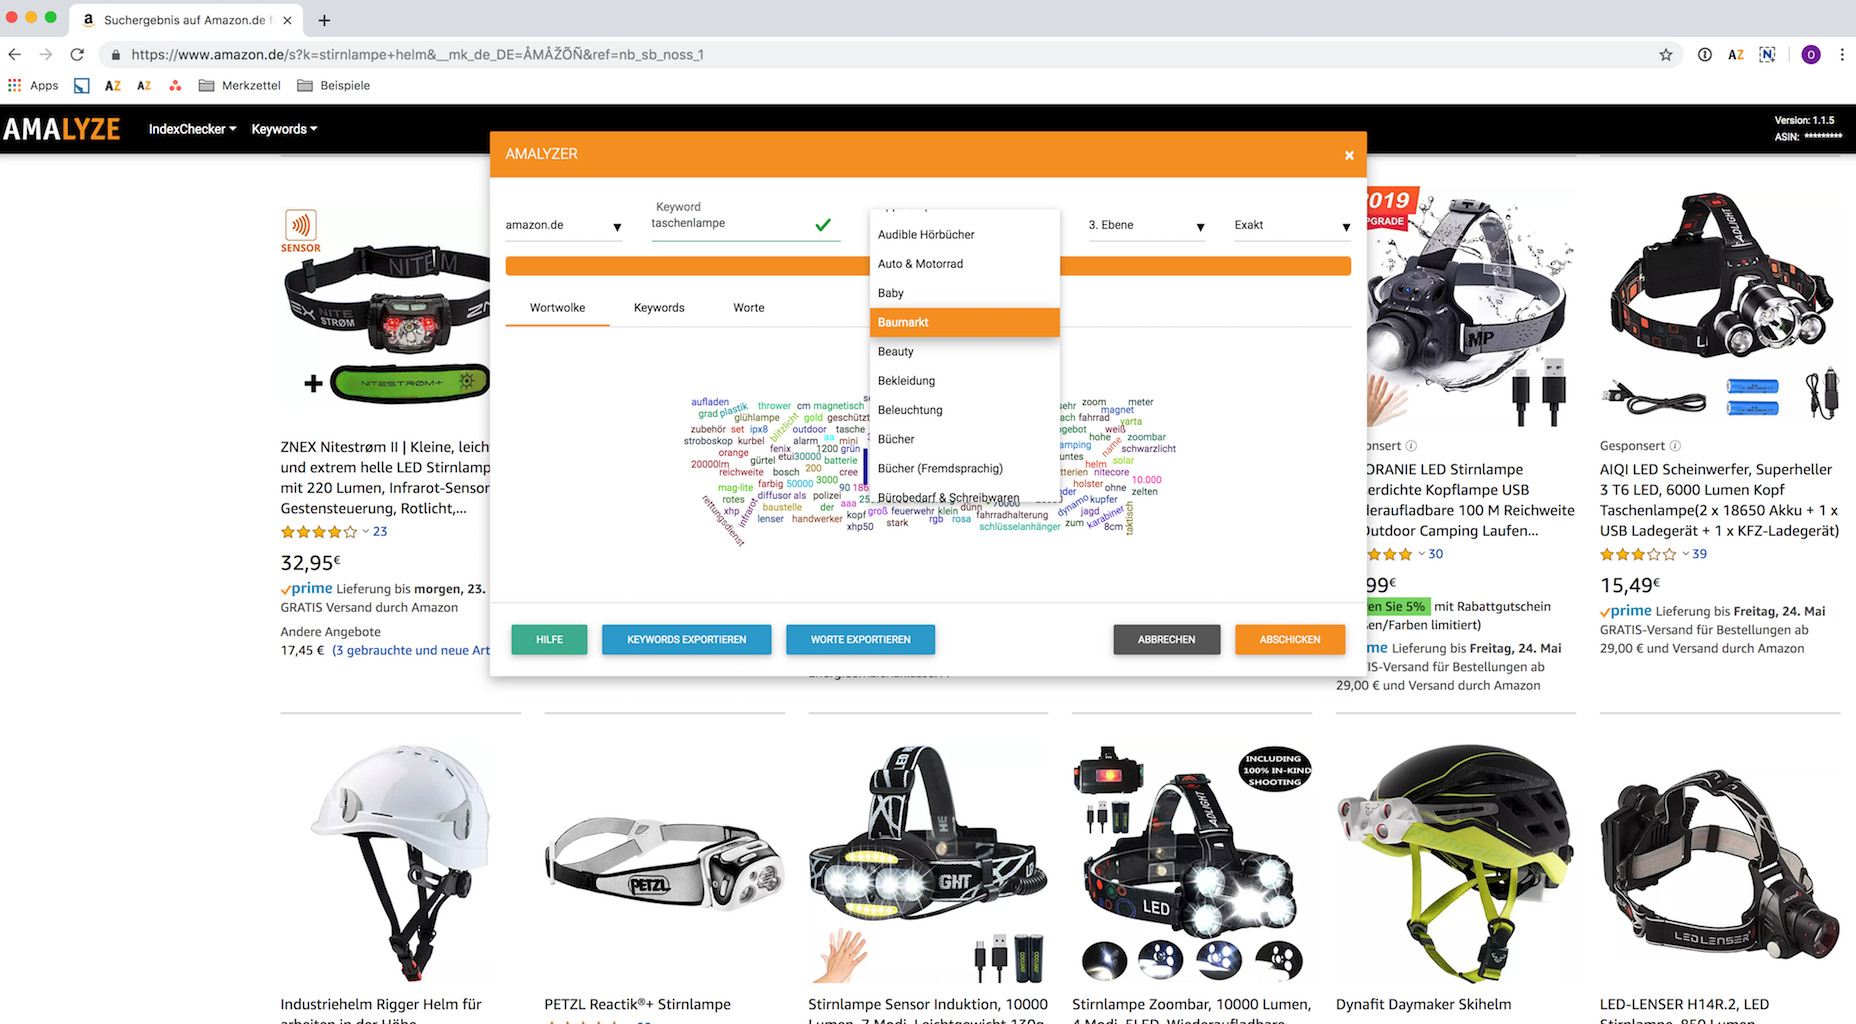 Suggest keywords search based on Amazon main category